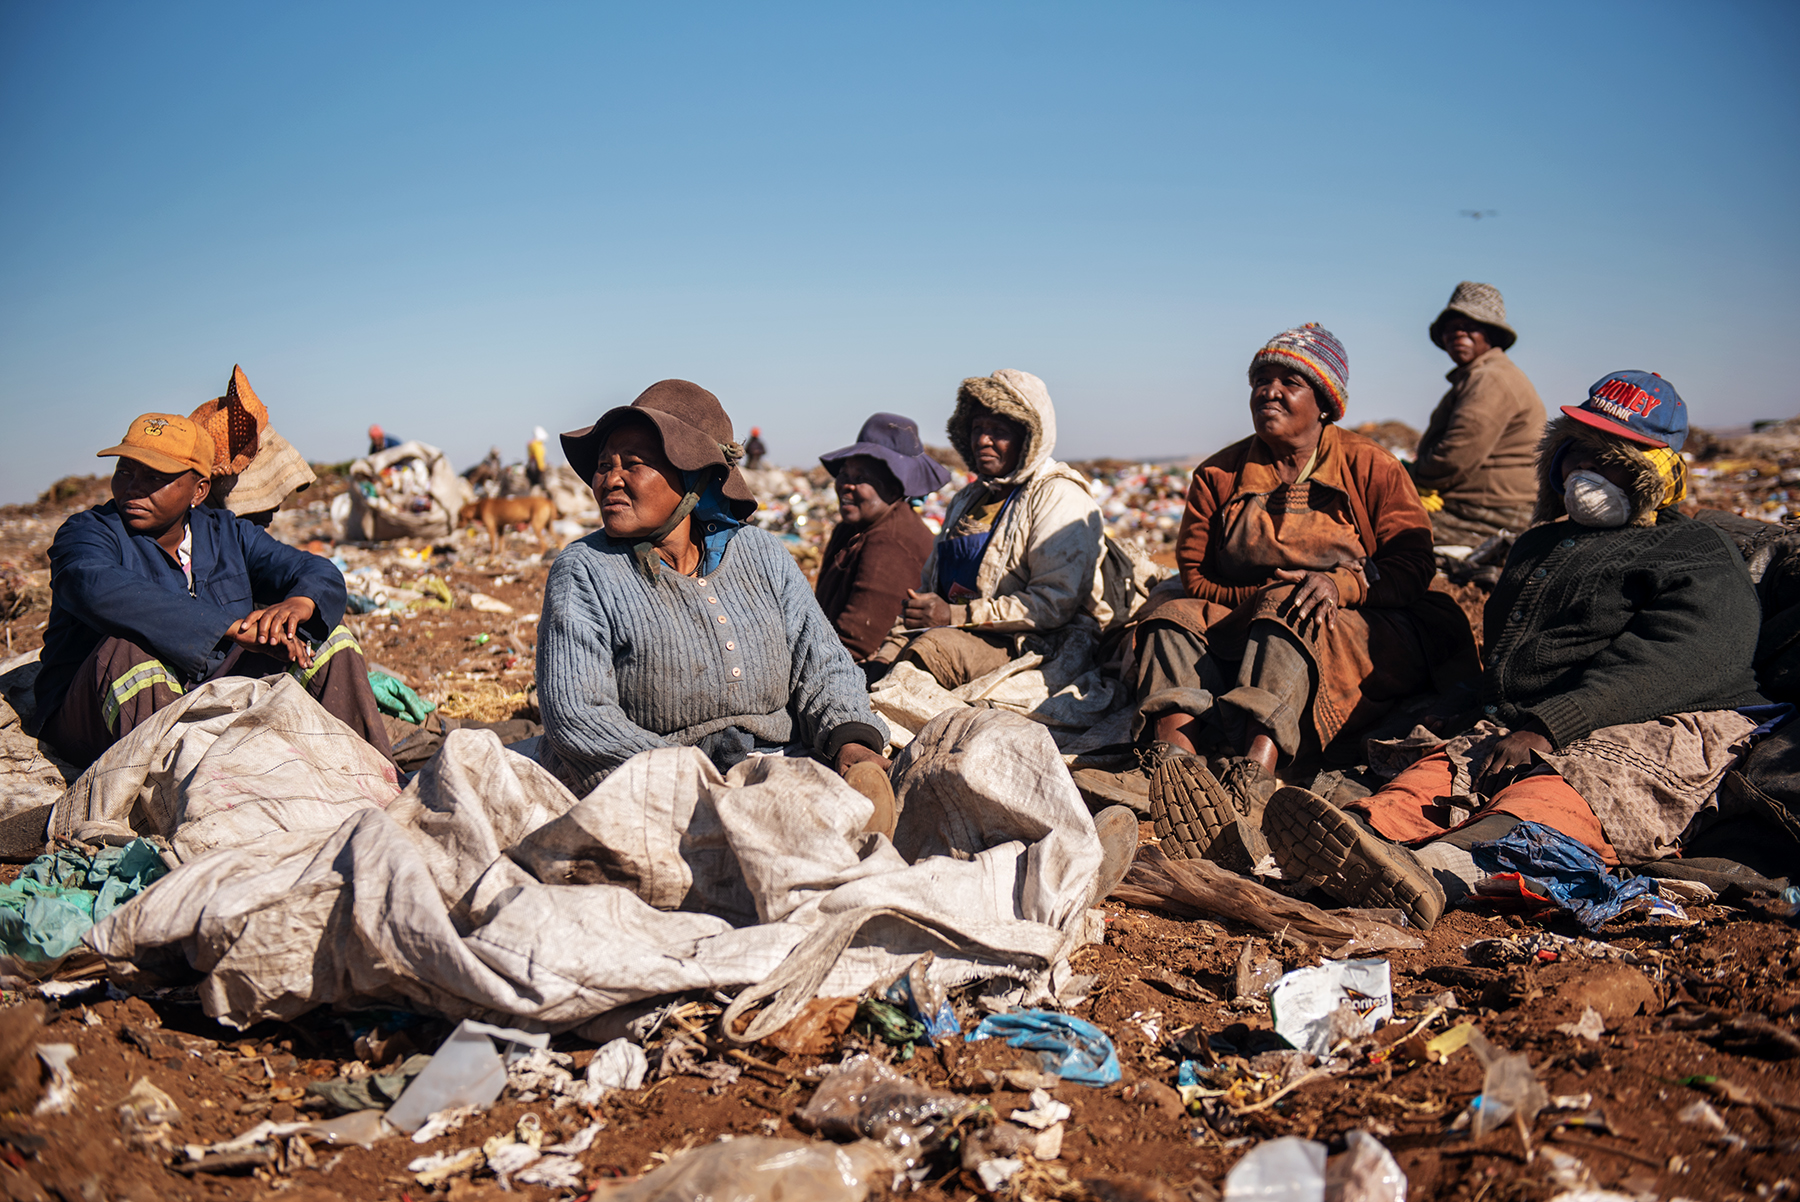 Maria Makoena (2-L), a 69 years old South African informal waste picker and mother of informal waste picker Eva Mokoena, rests along other informal recyclers at the Palm Springs landfill in the outskirt of Johannesburg, South Africa, on June 28, 2019.